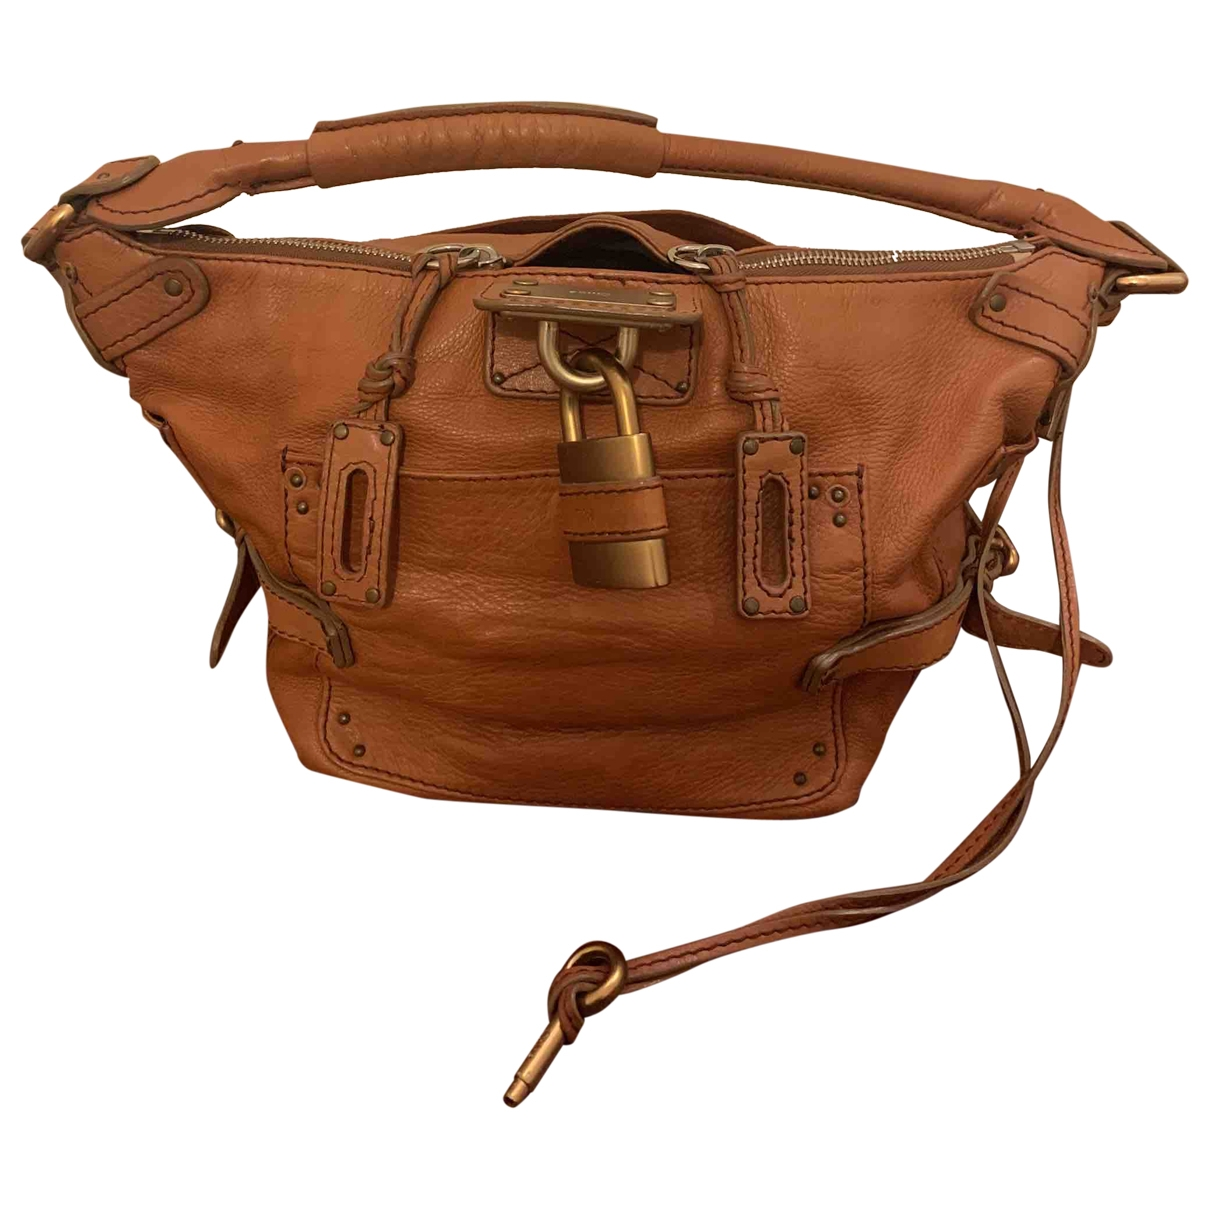 Chloé Paddington Camel Leather handbag for Women \N